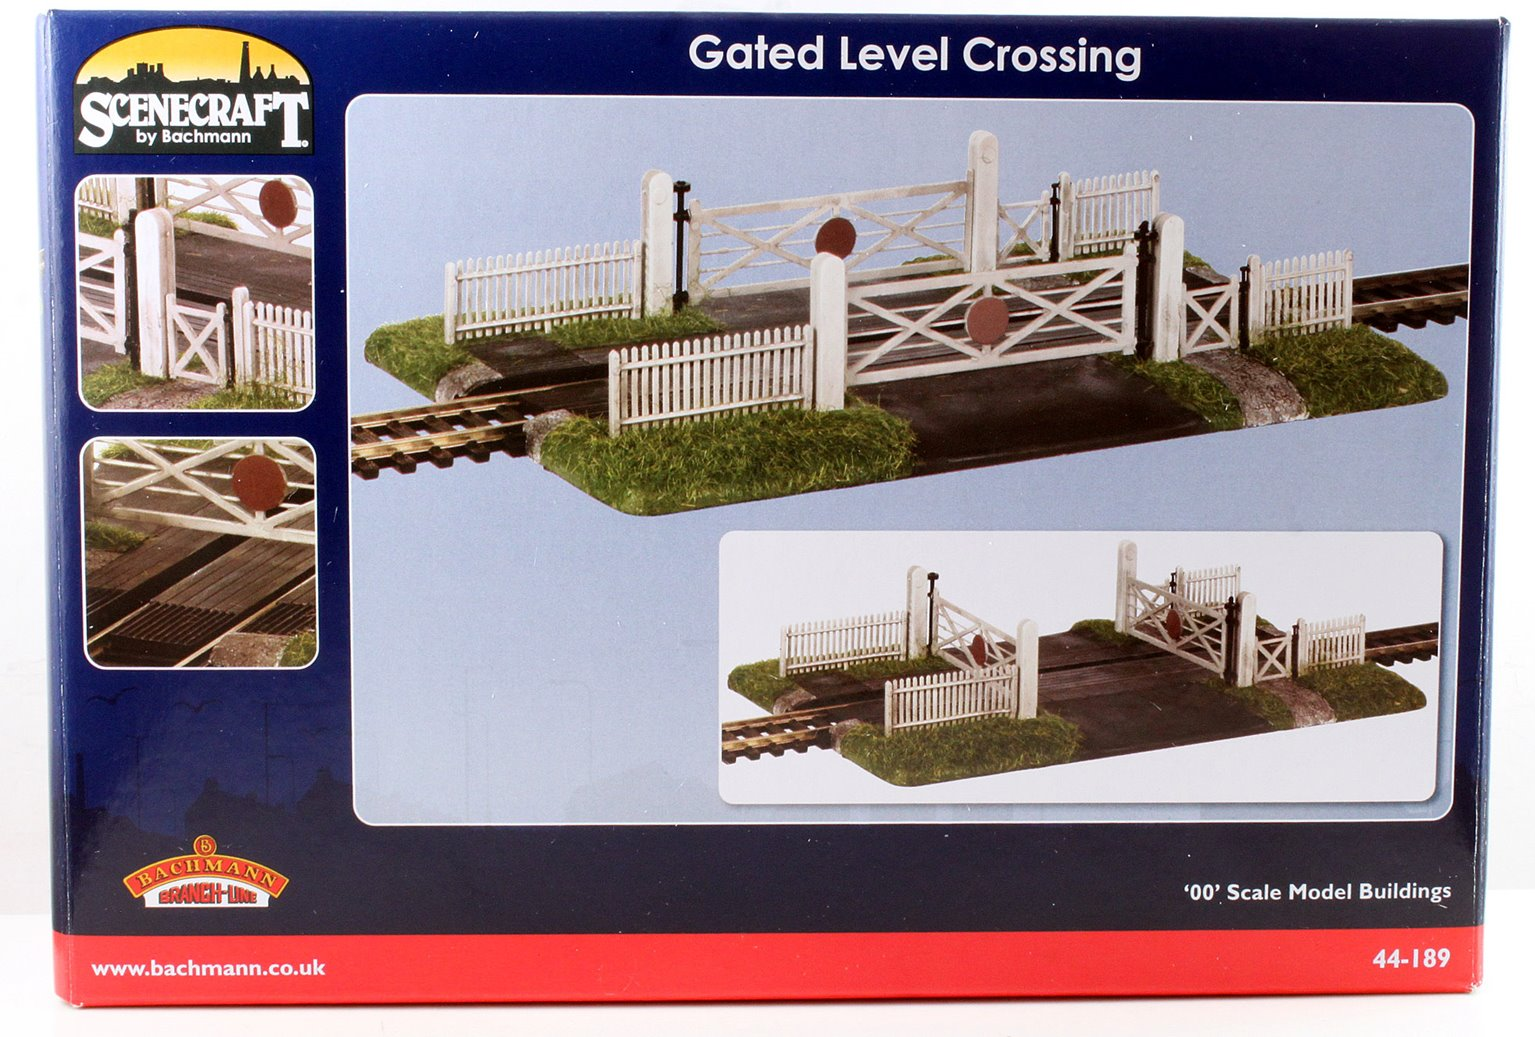 Gated Level Crossing